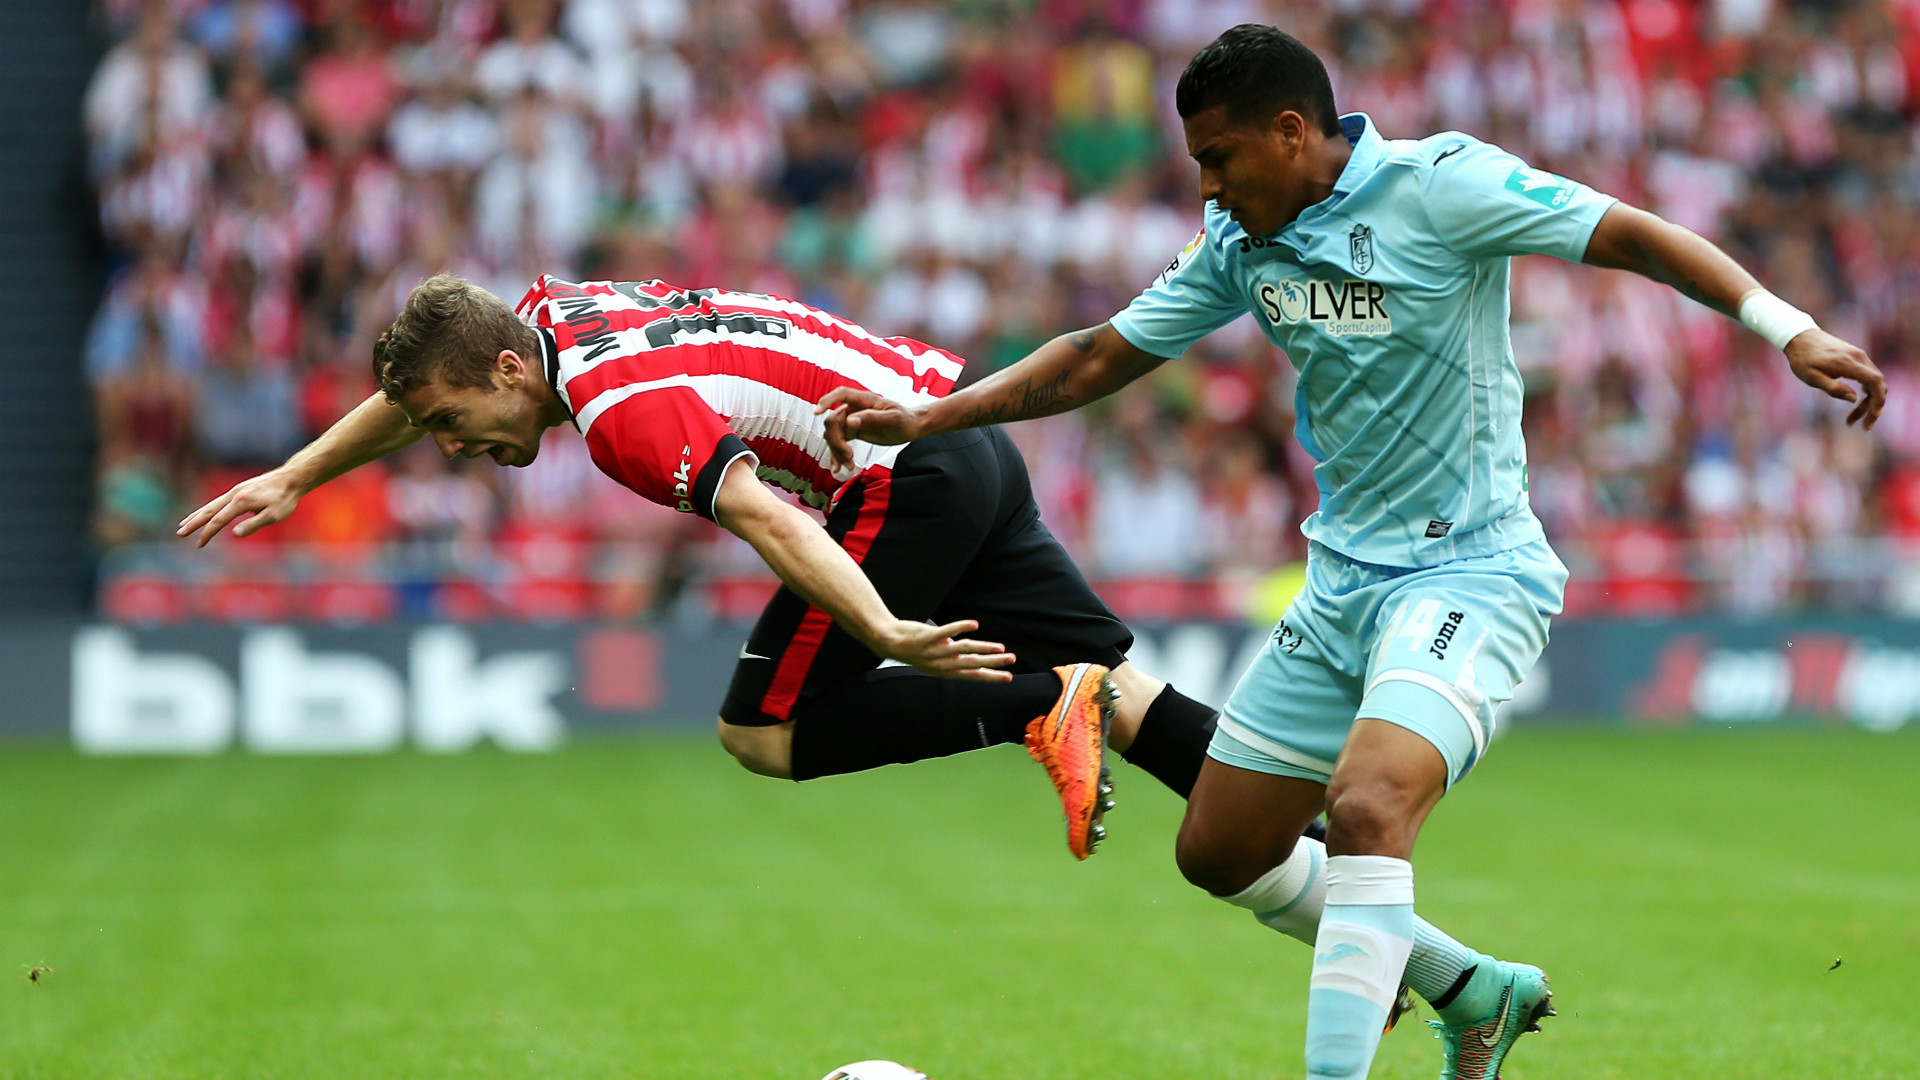 Video: Athletic Bilbao vs Granada